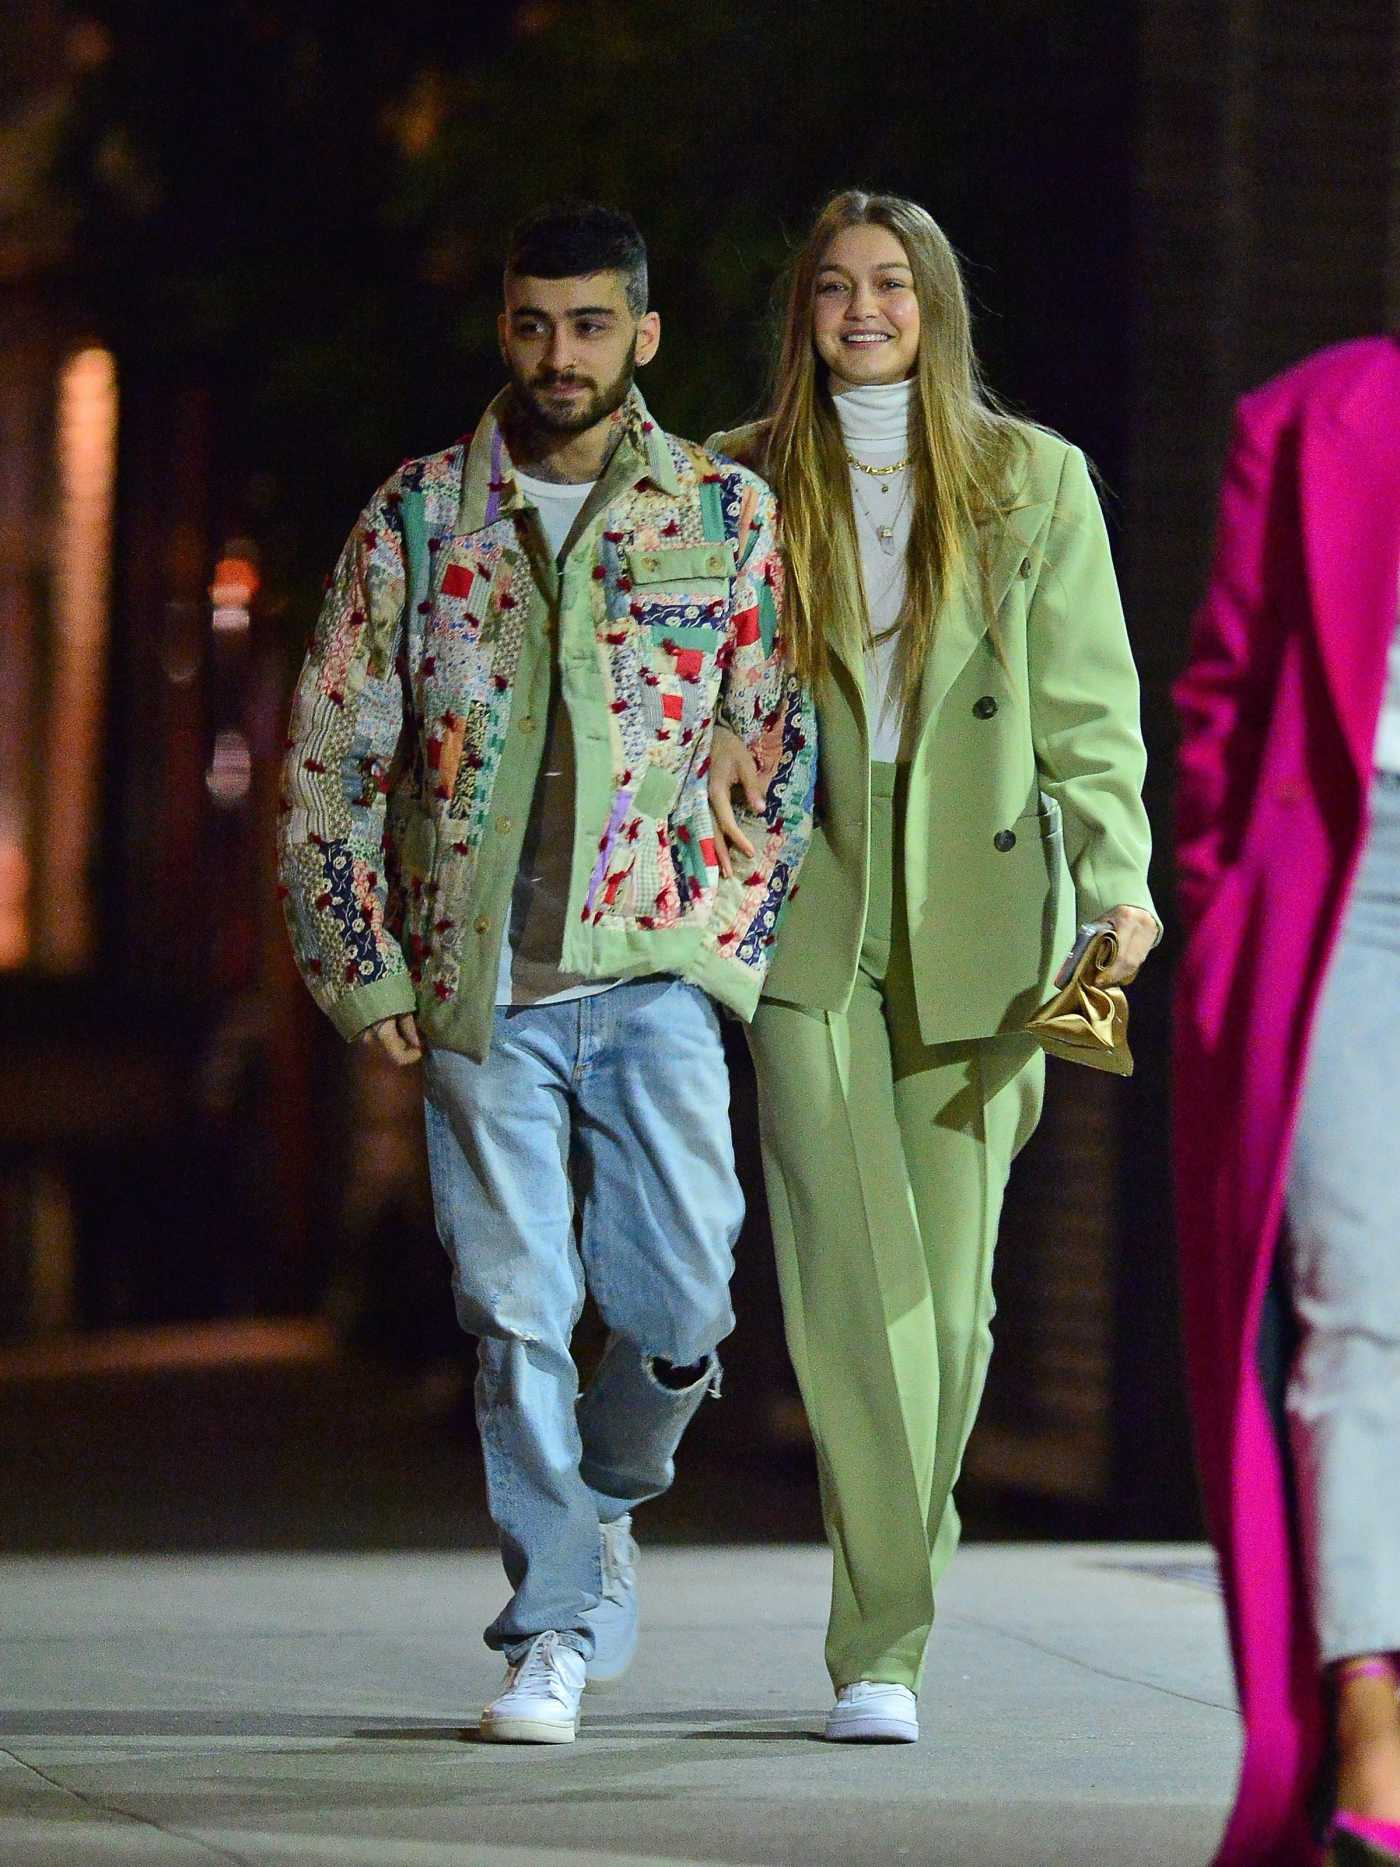 Gigi Hadid in a Green Suit Was Seen Out with Zayn Malik in NYC 01/11/2020